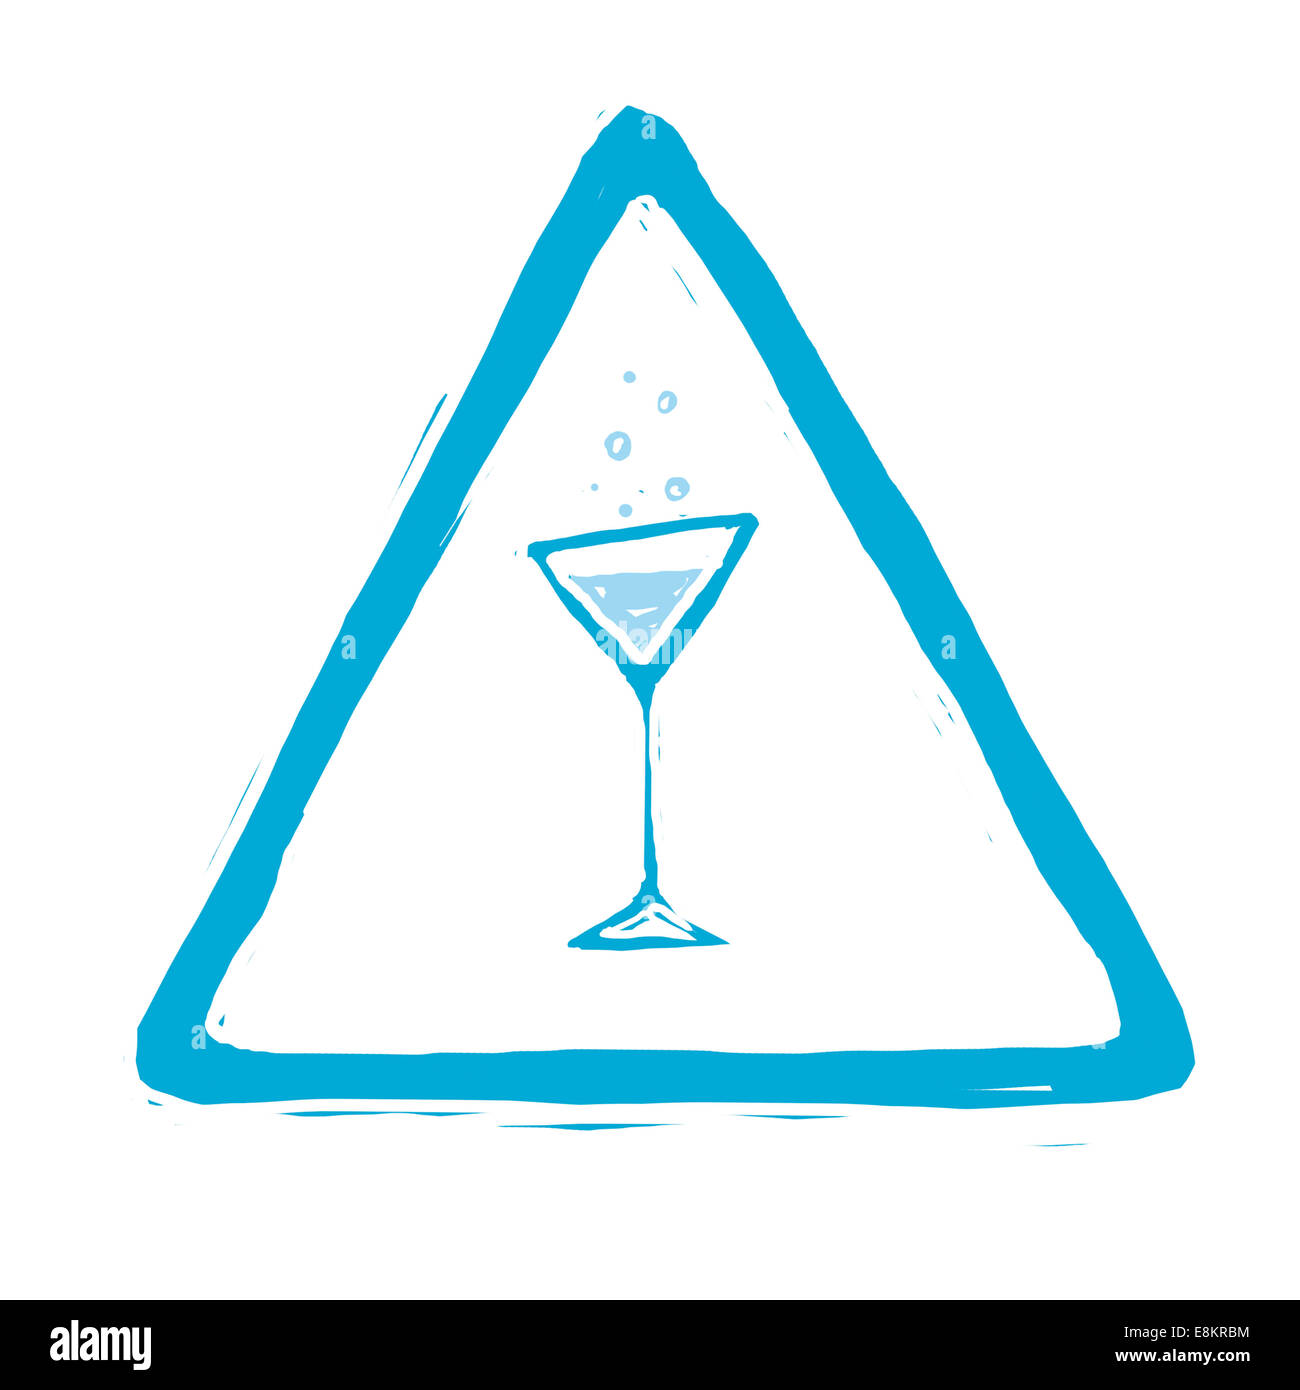 Pictogram illustrating the dangers of alcohol. - Stock Image